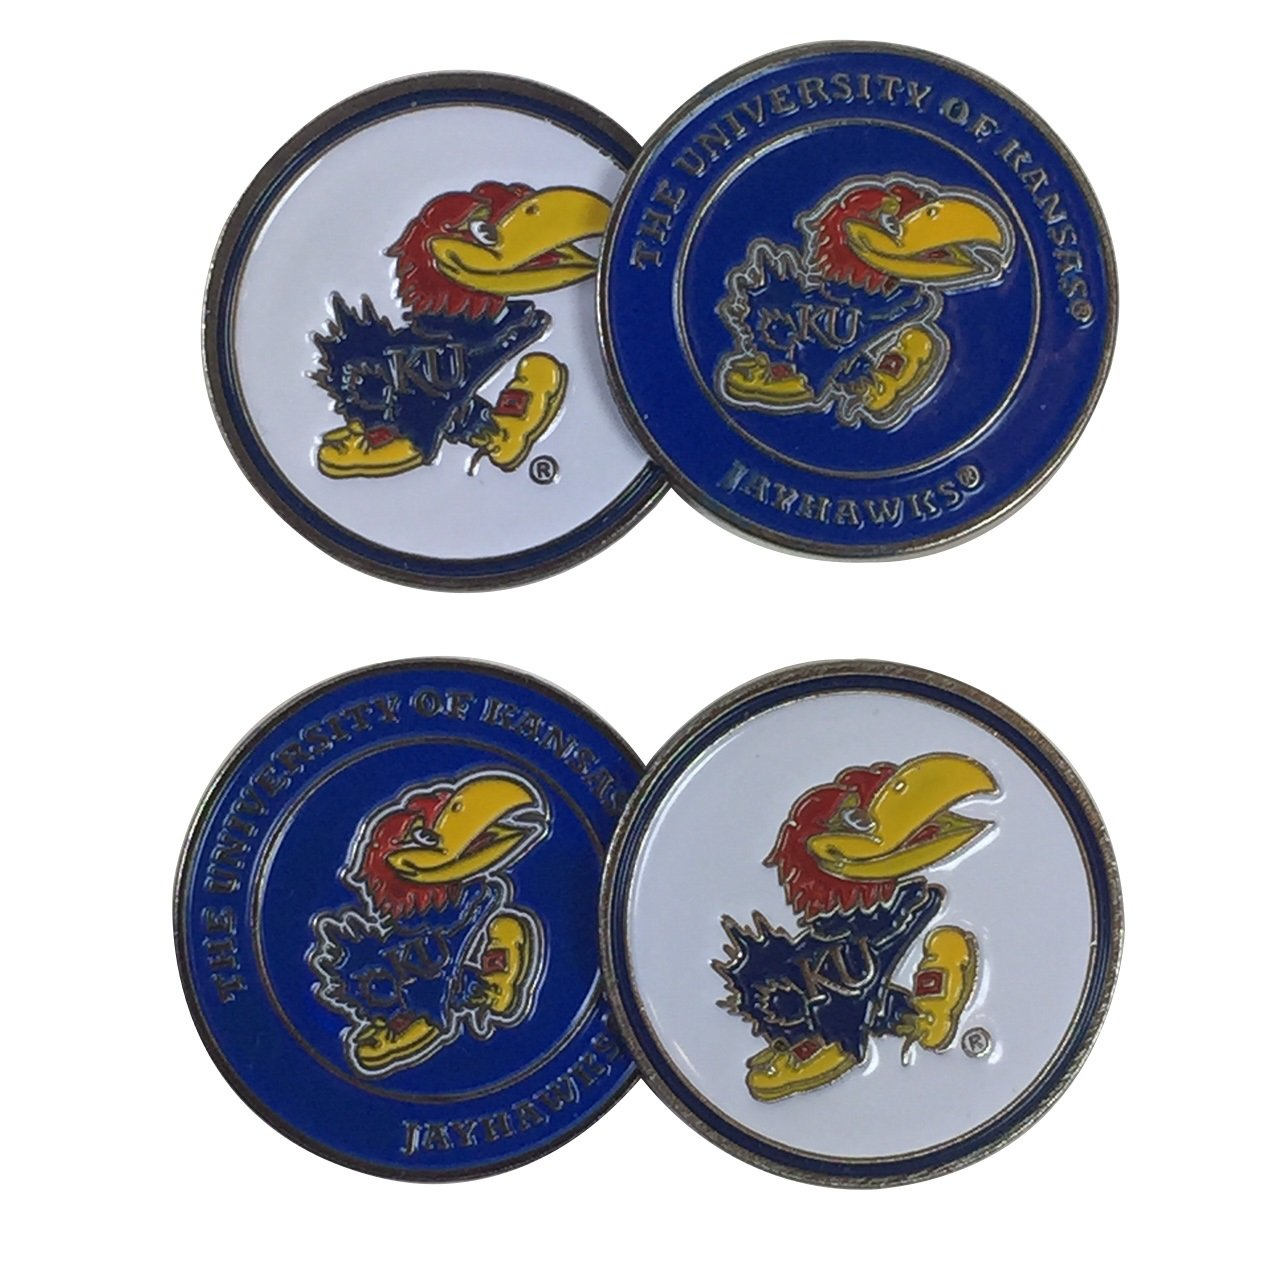 University of Kansas Jayhawks Four (4) Golf Ball Markers - 2 sided (Mascot on both sides) by Team Golf (Image #1)